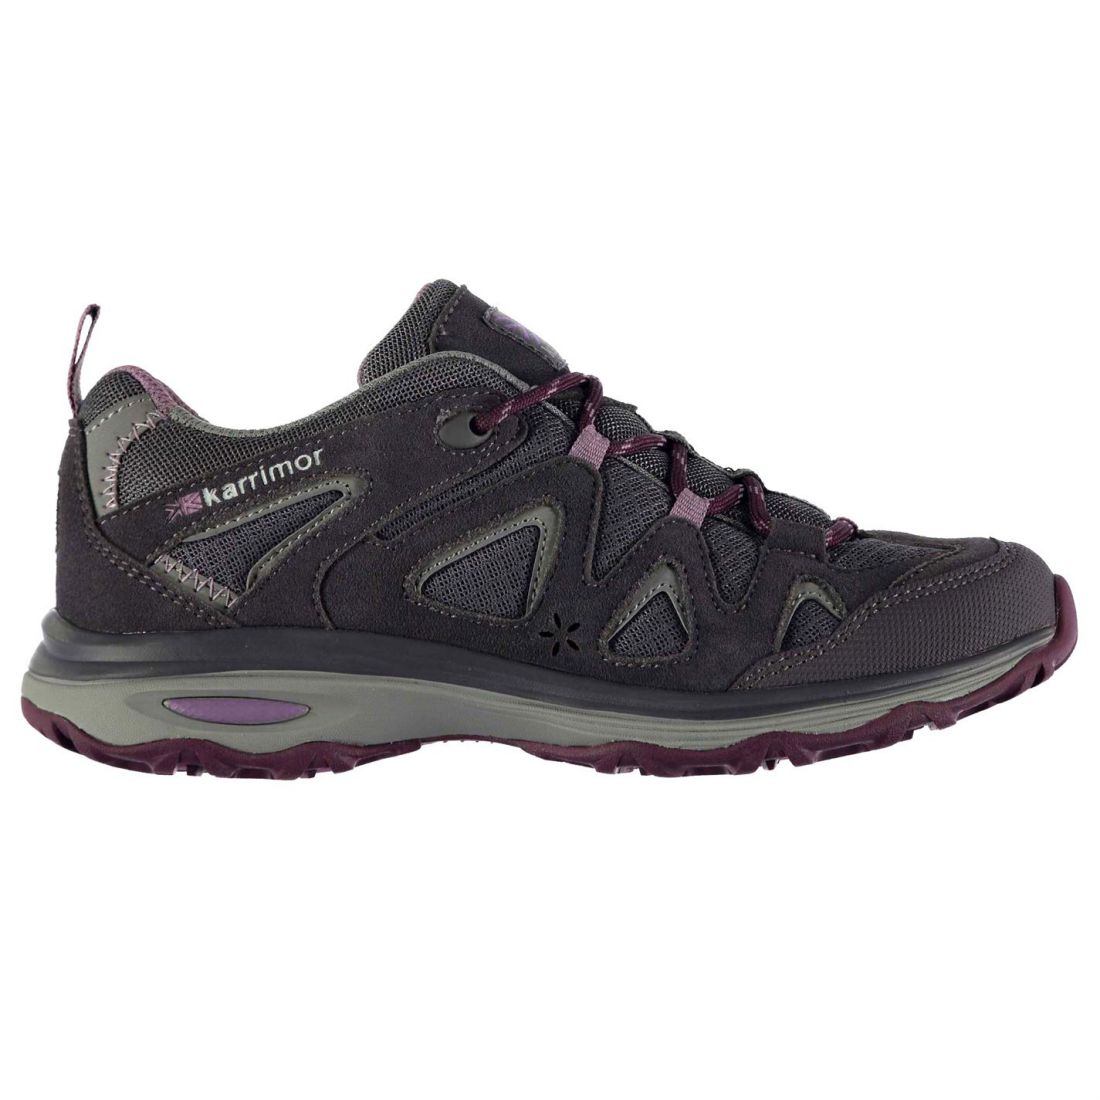 Details about Karrimor Womens Border Shoes Reinforced Outdoor Walking  Trekking Hiking 3510a1b8aaa6f